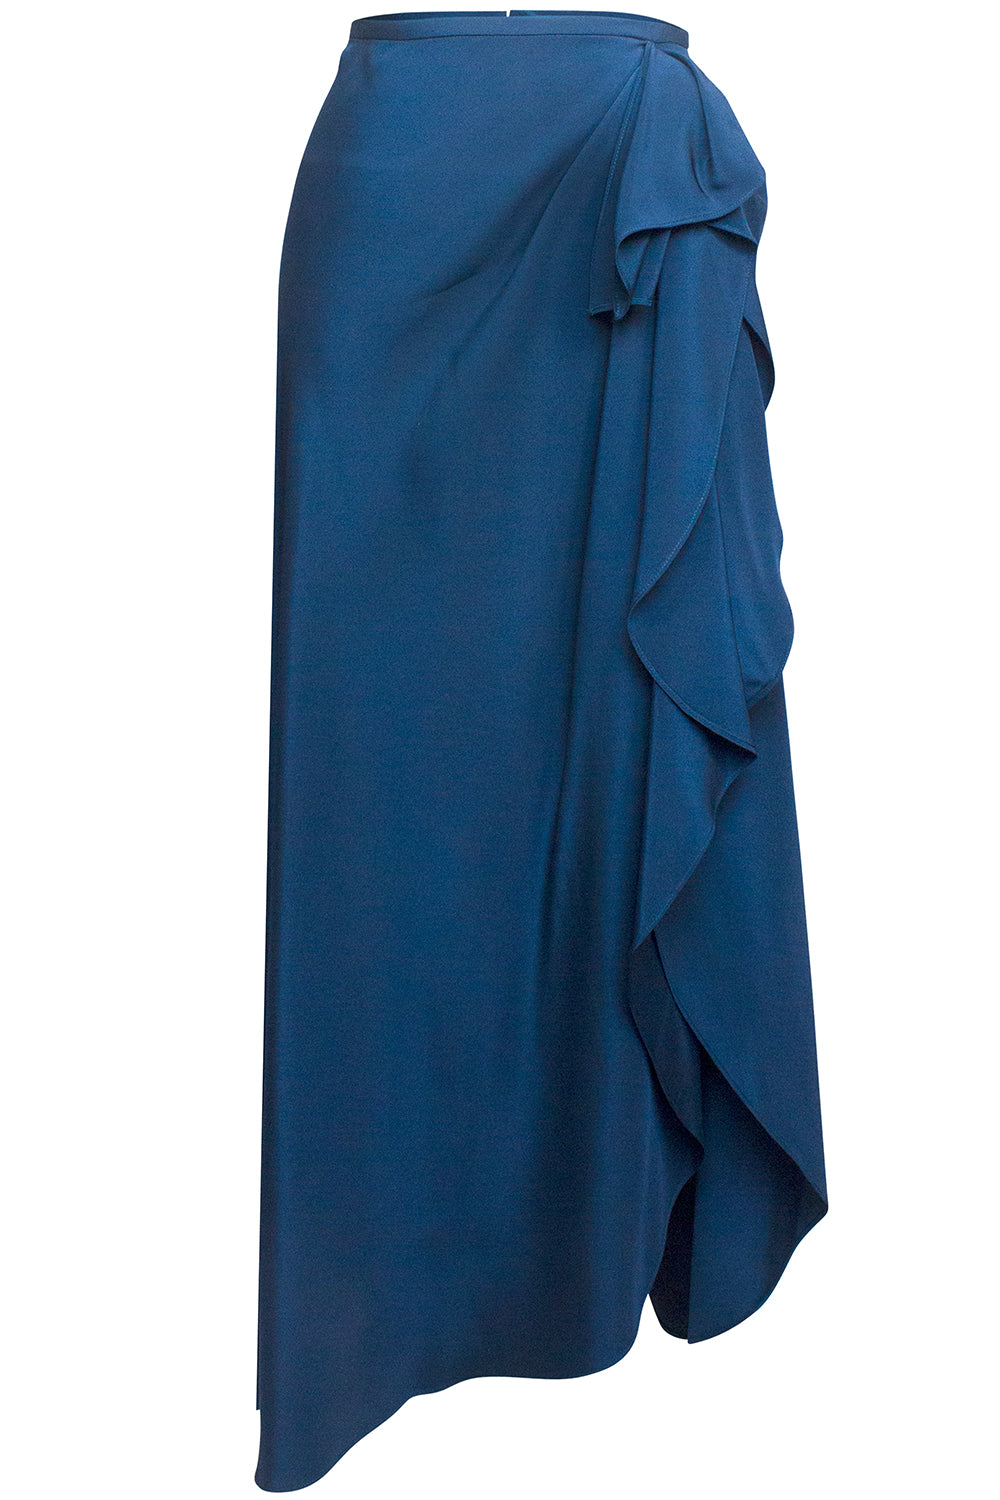 Maite Cascade Skirt in Teal Blue